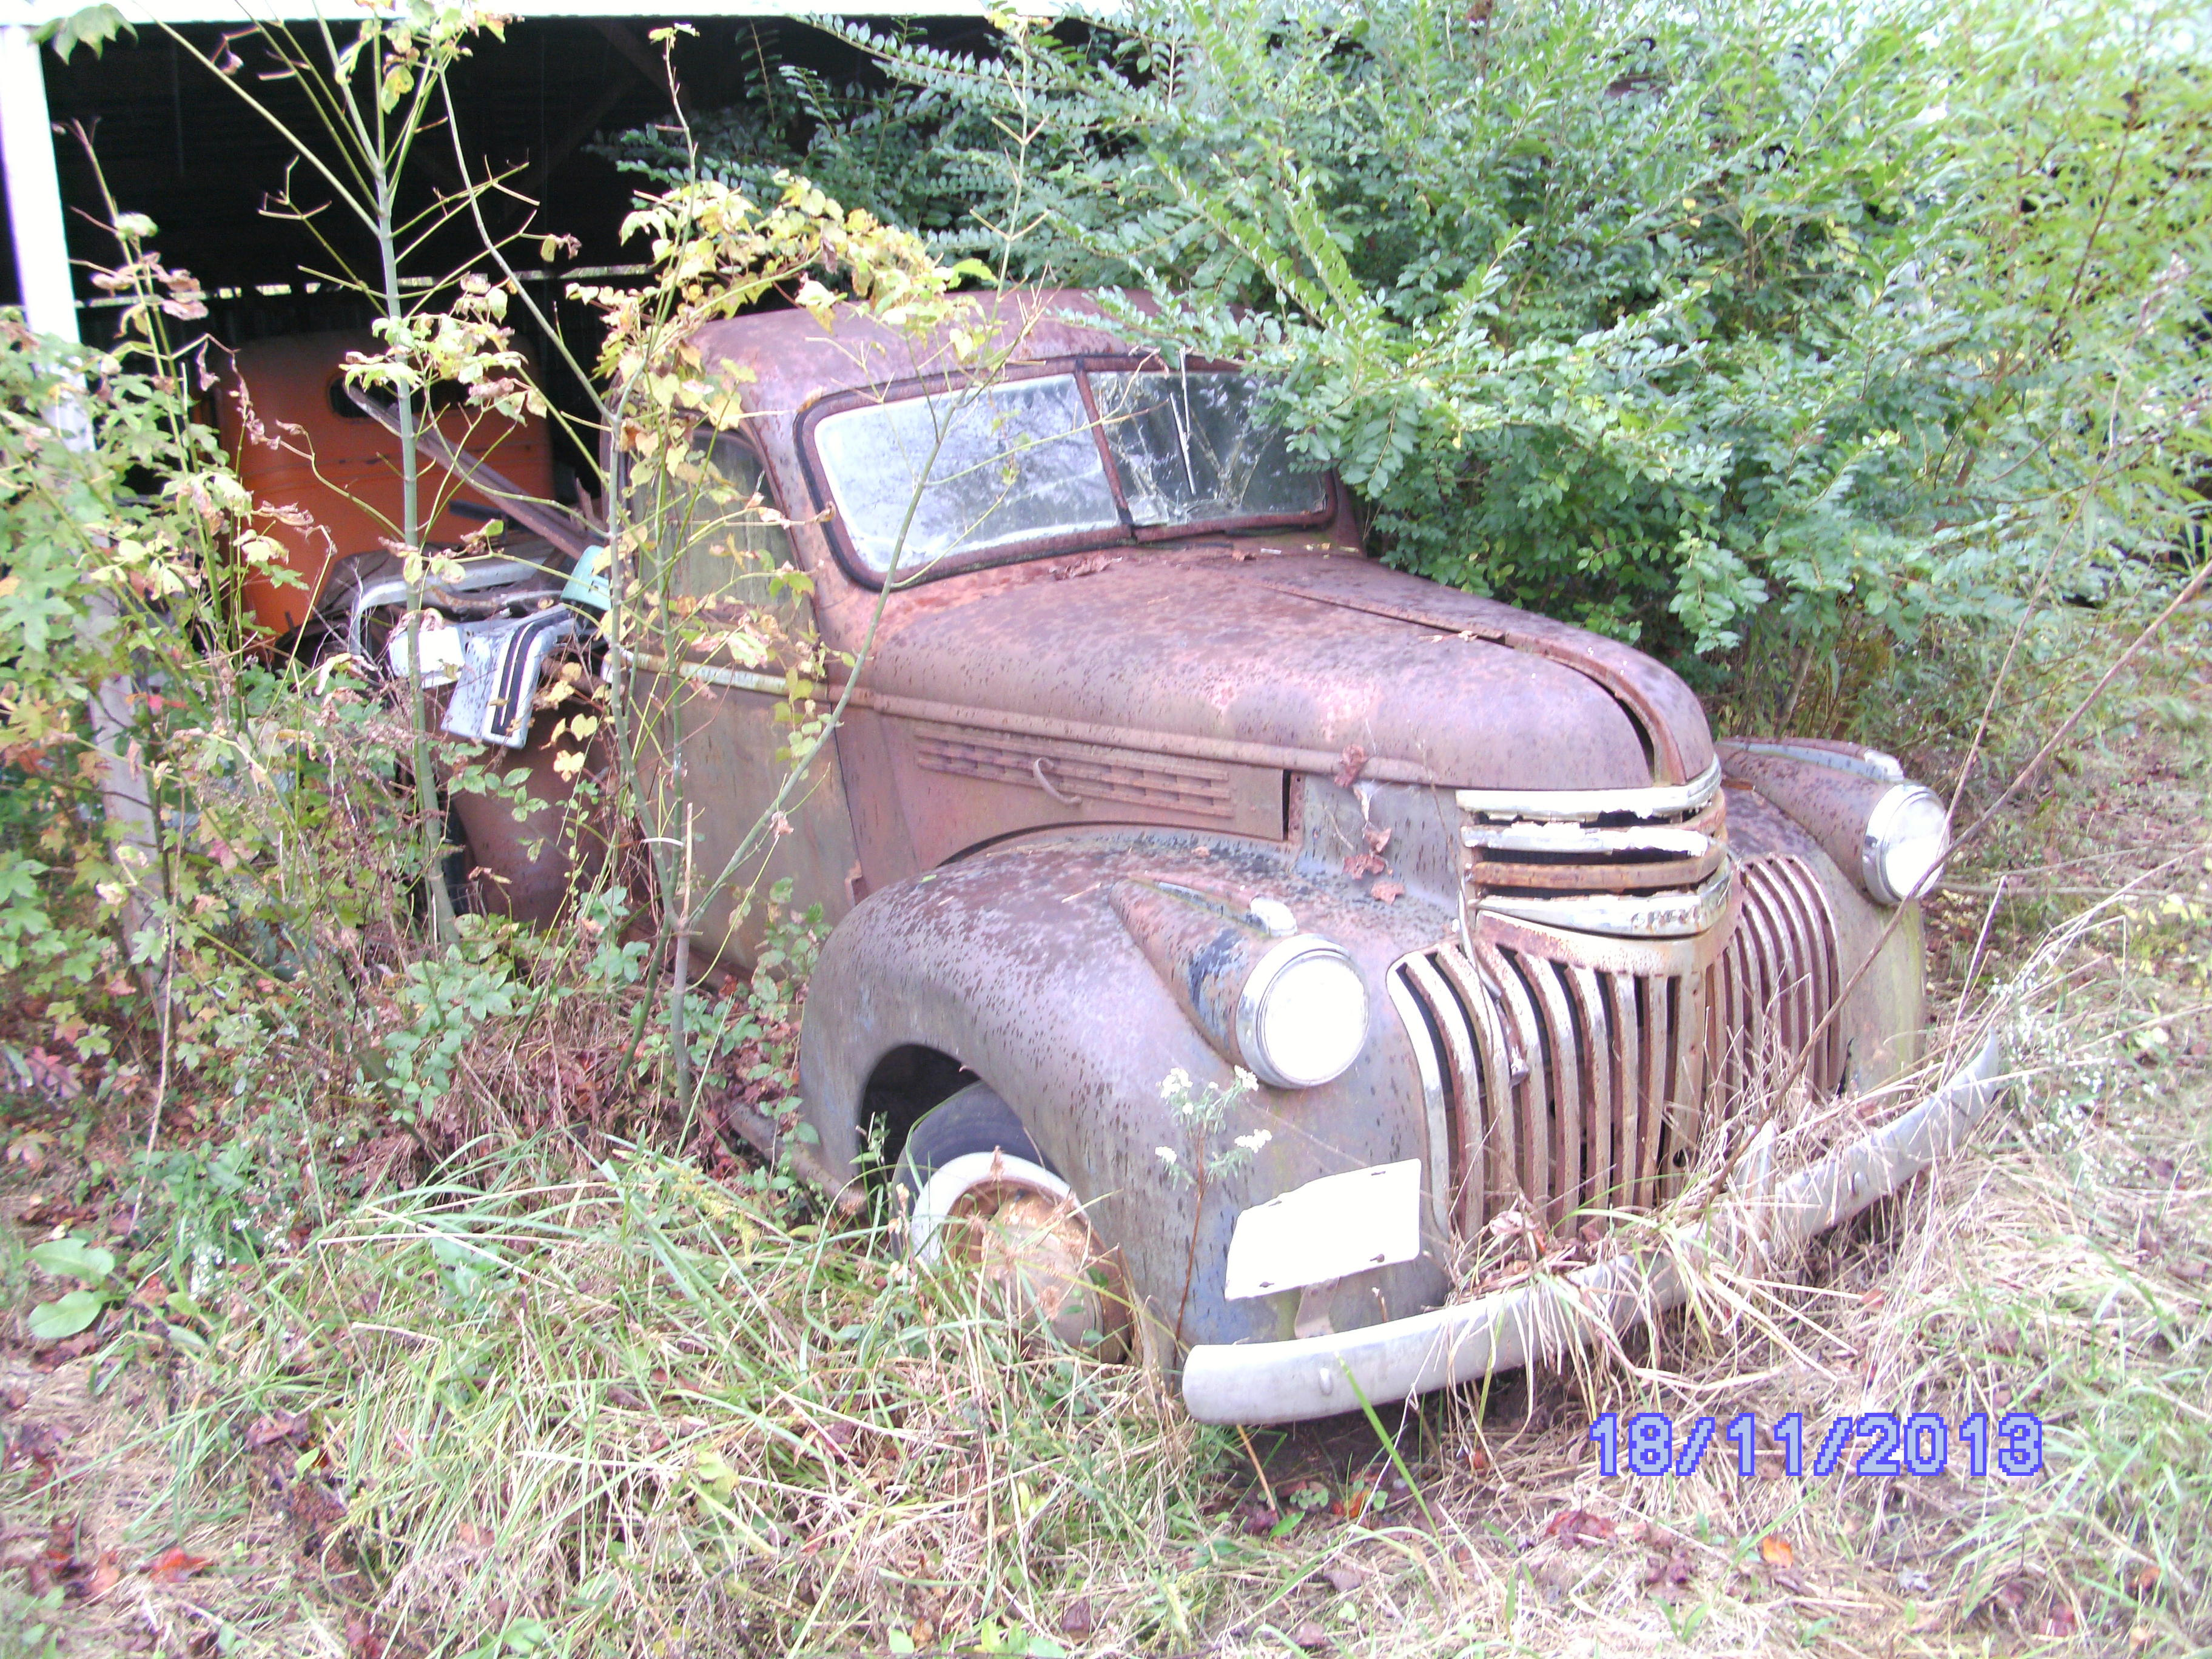 Click image for larger version  Name:BARN FINDS 016.jpg Views:84 Size:1.93 MB ID:91866